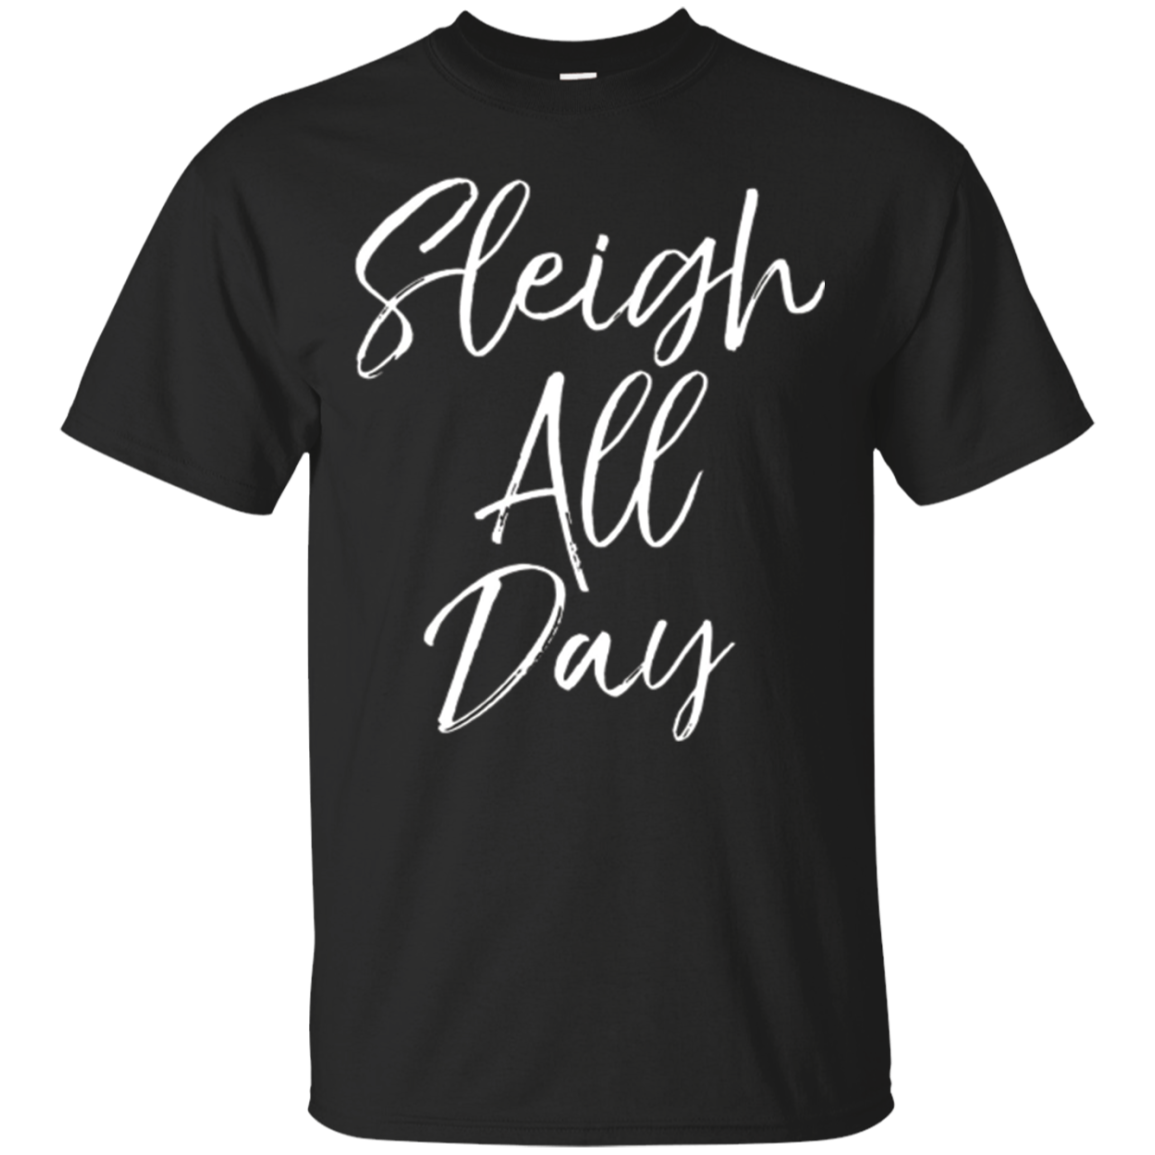 Sleigh All Day Shirt Fun Cute Christmas Pun Sledding Tee